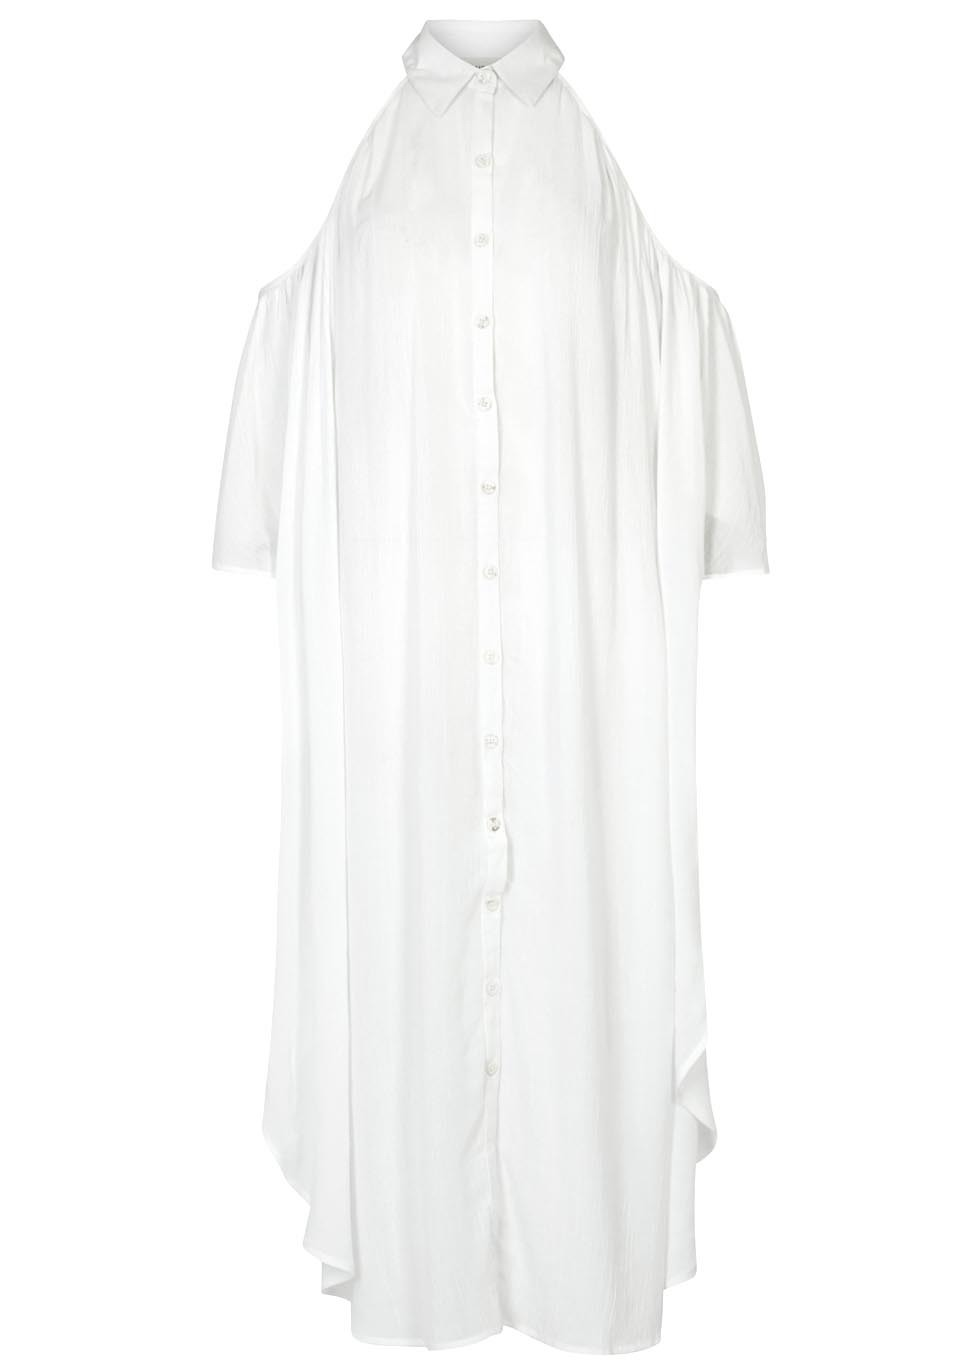 White Flared Voile Dress - style: shirt; neckline: shirt collar/peter pan/zip with opening; fit: loose; pattern: plain; predominant colour: white; occasions: casual, creative work; length: just above the knee; fibres: viscose/rayon - 100%; shoulder detail: cut out shoulder; sleeve length: half sleeve; sleeve style: standard; texture group: sheer fabrics/chiffon/organza etc.; pattern type: fabric; season: s/s 2016; wardrobe: highlight